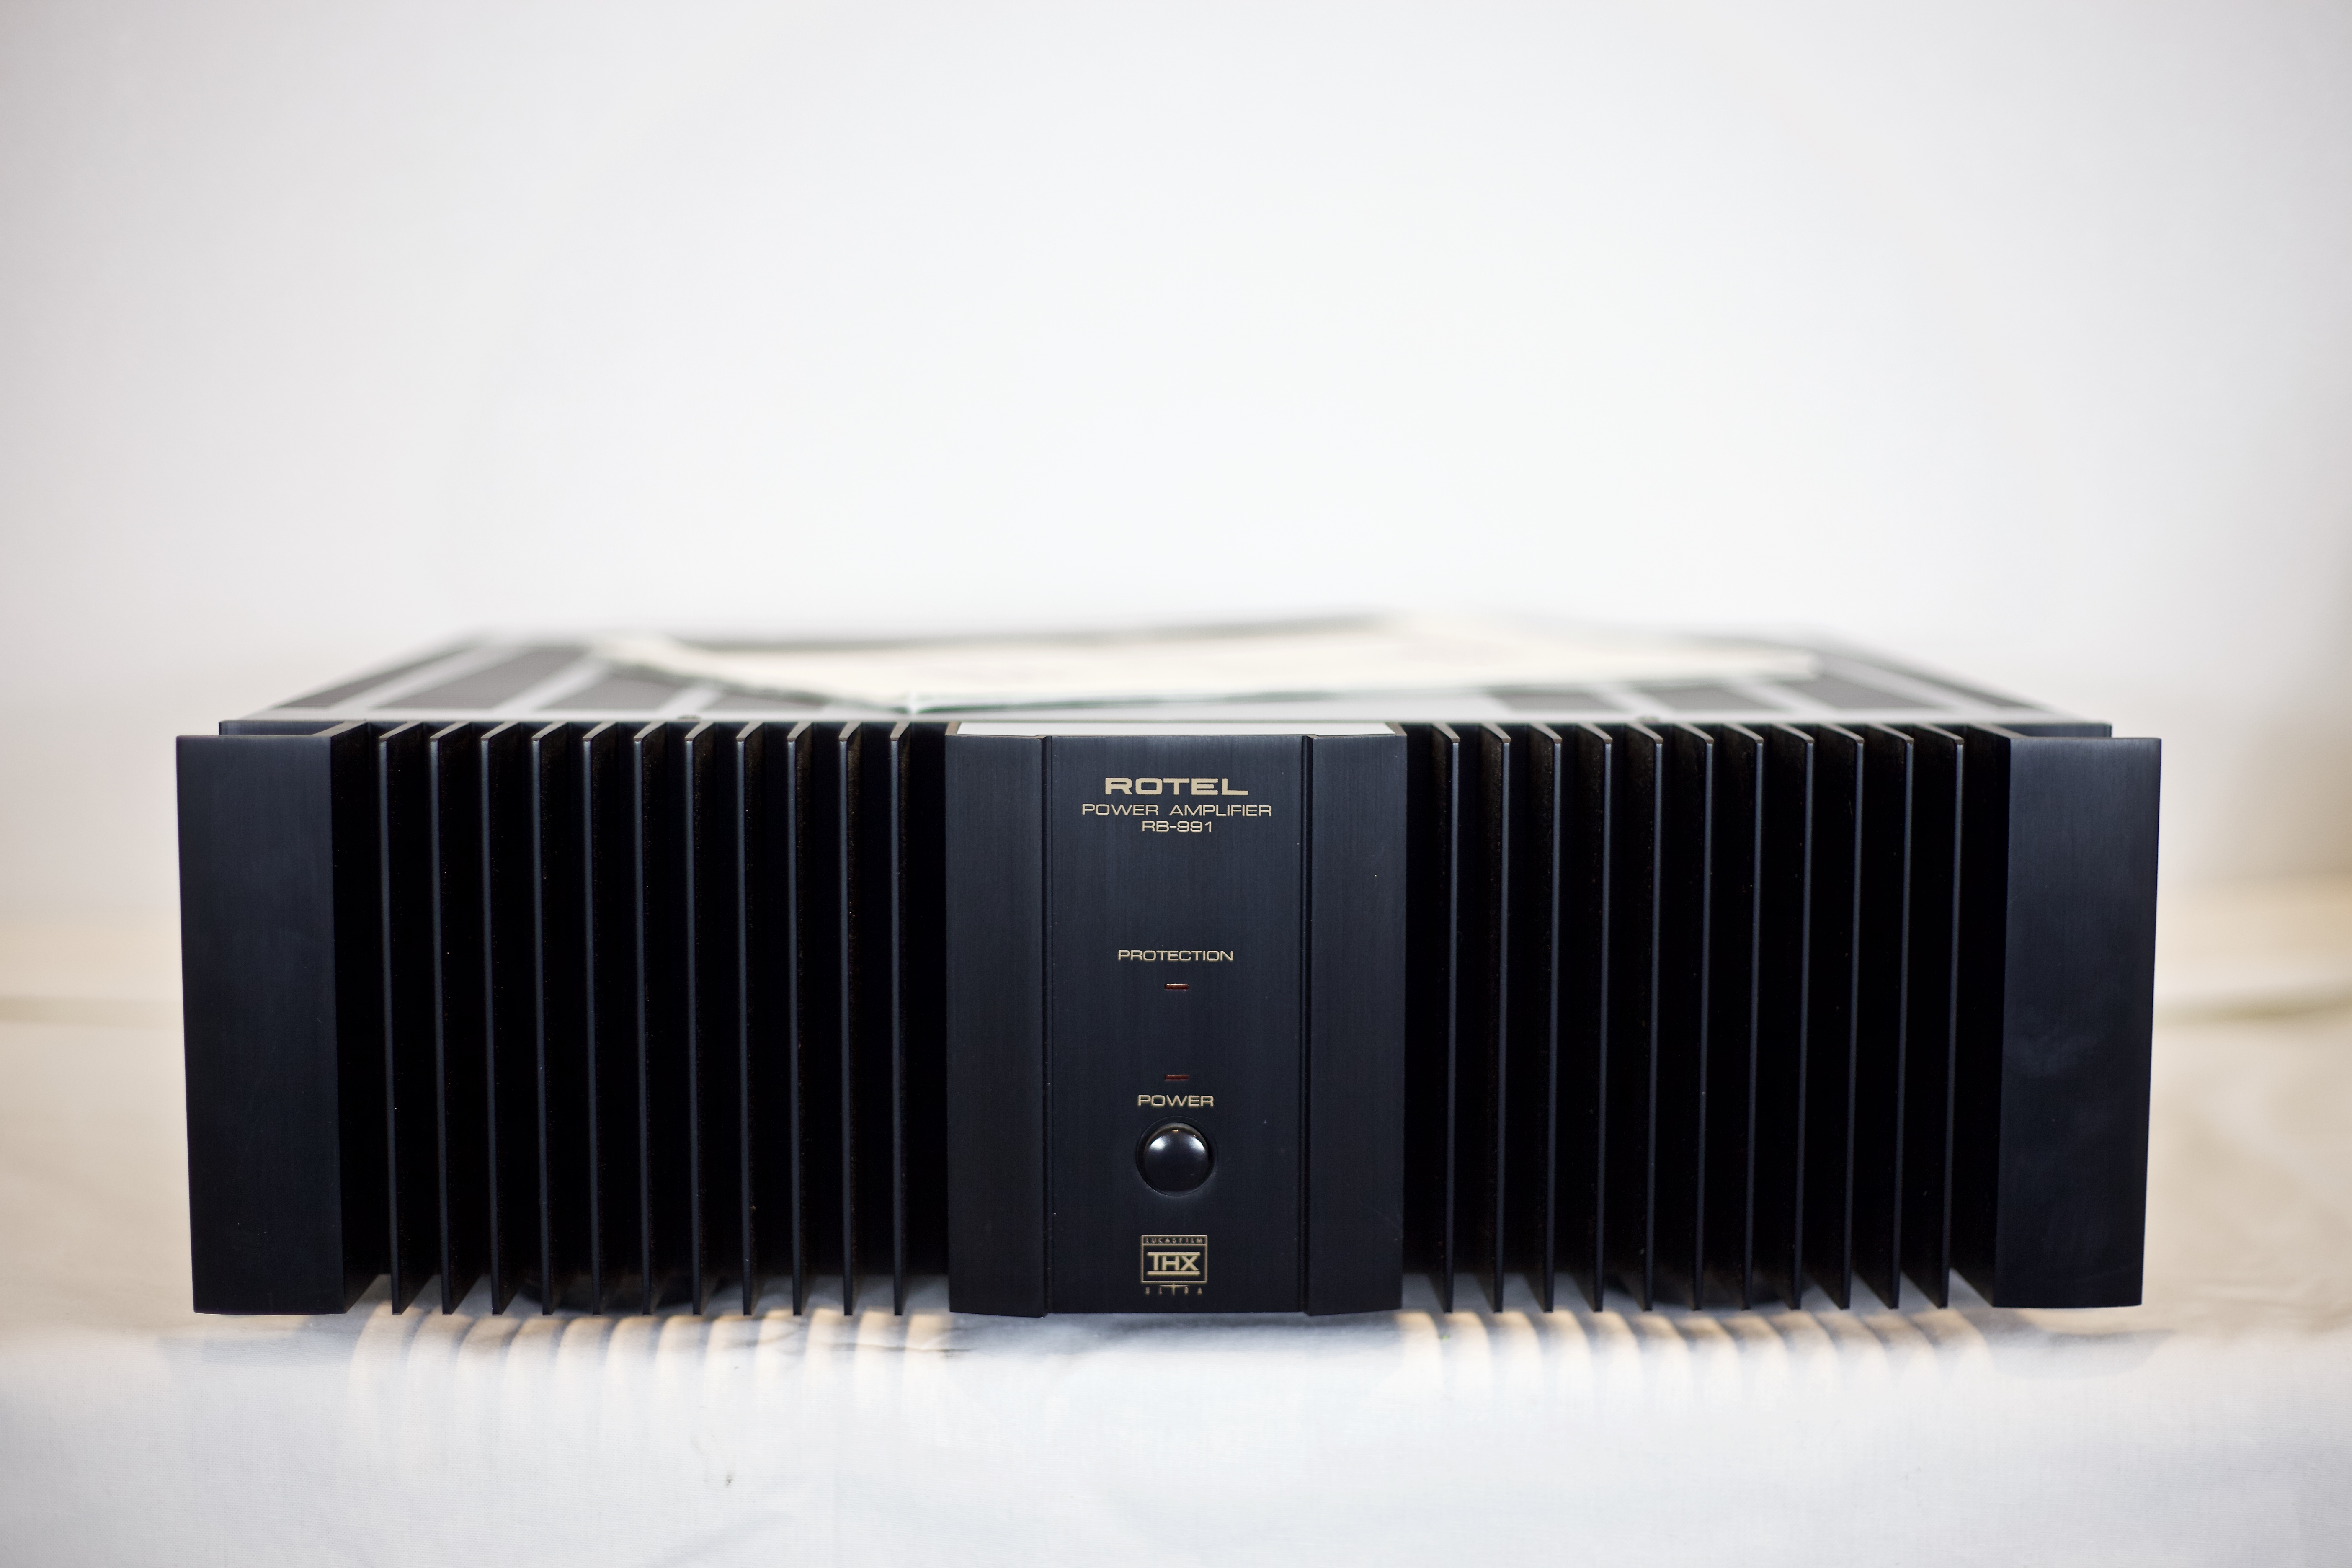 Rotel RB-991 Audio Amplifier.